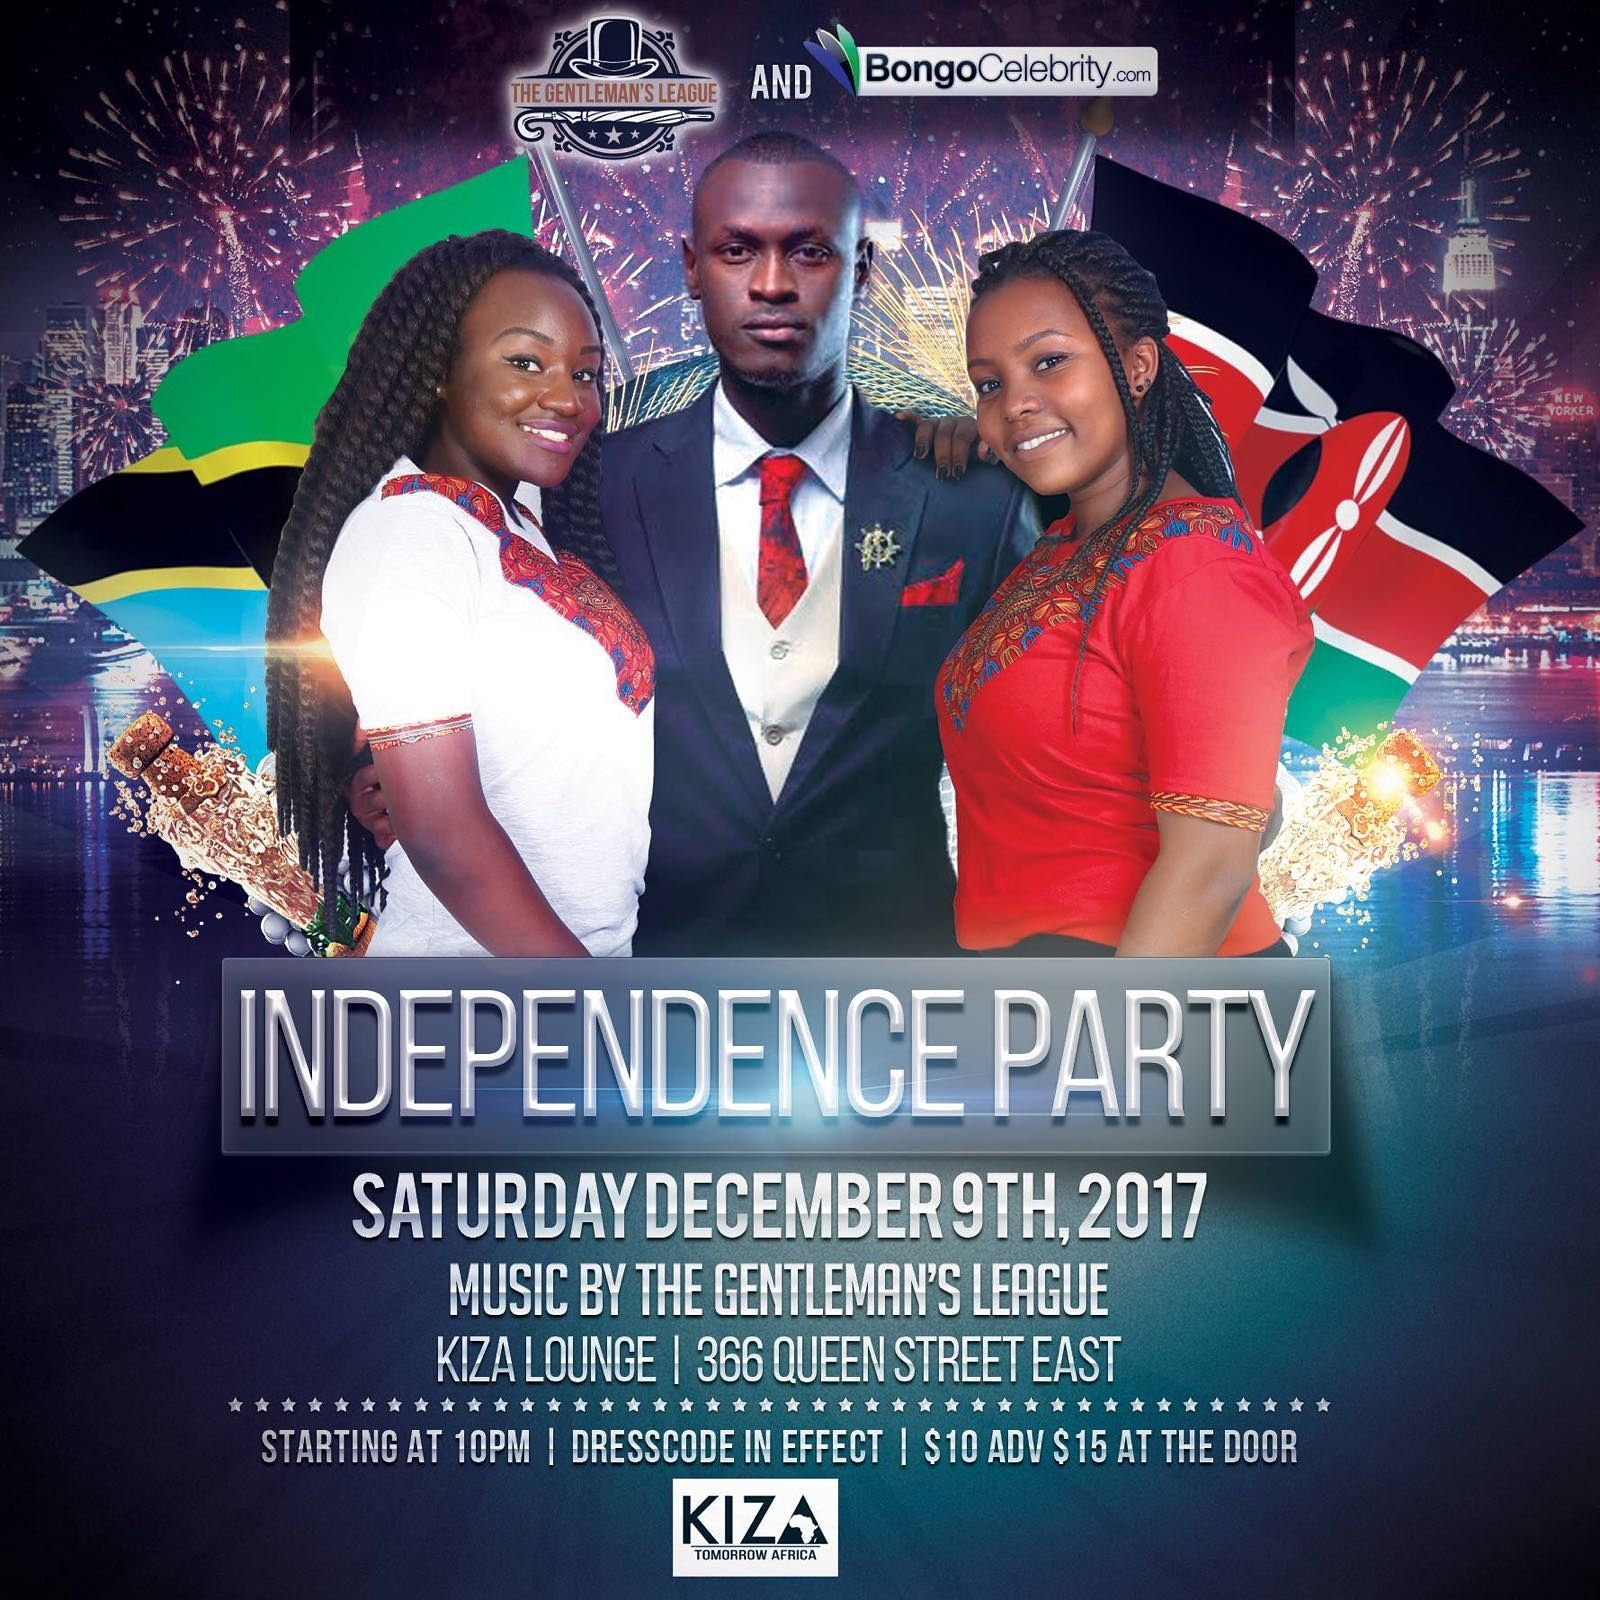 Exclusive Independence Party For Kenya And Tanzania In Toronto!